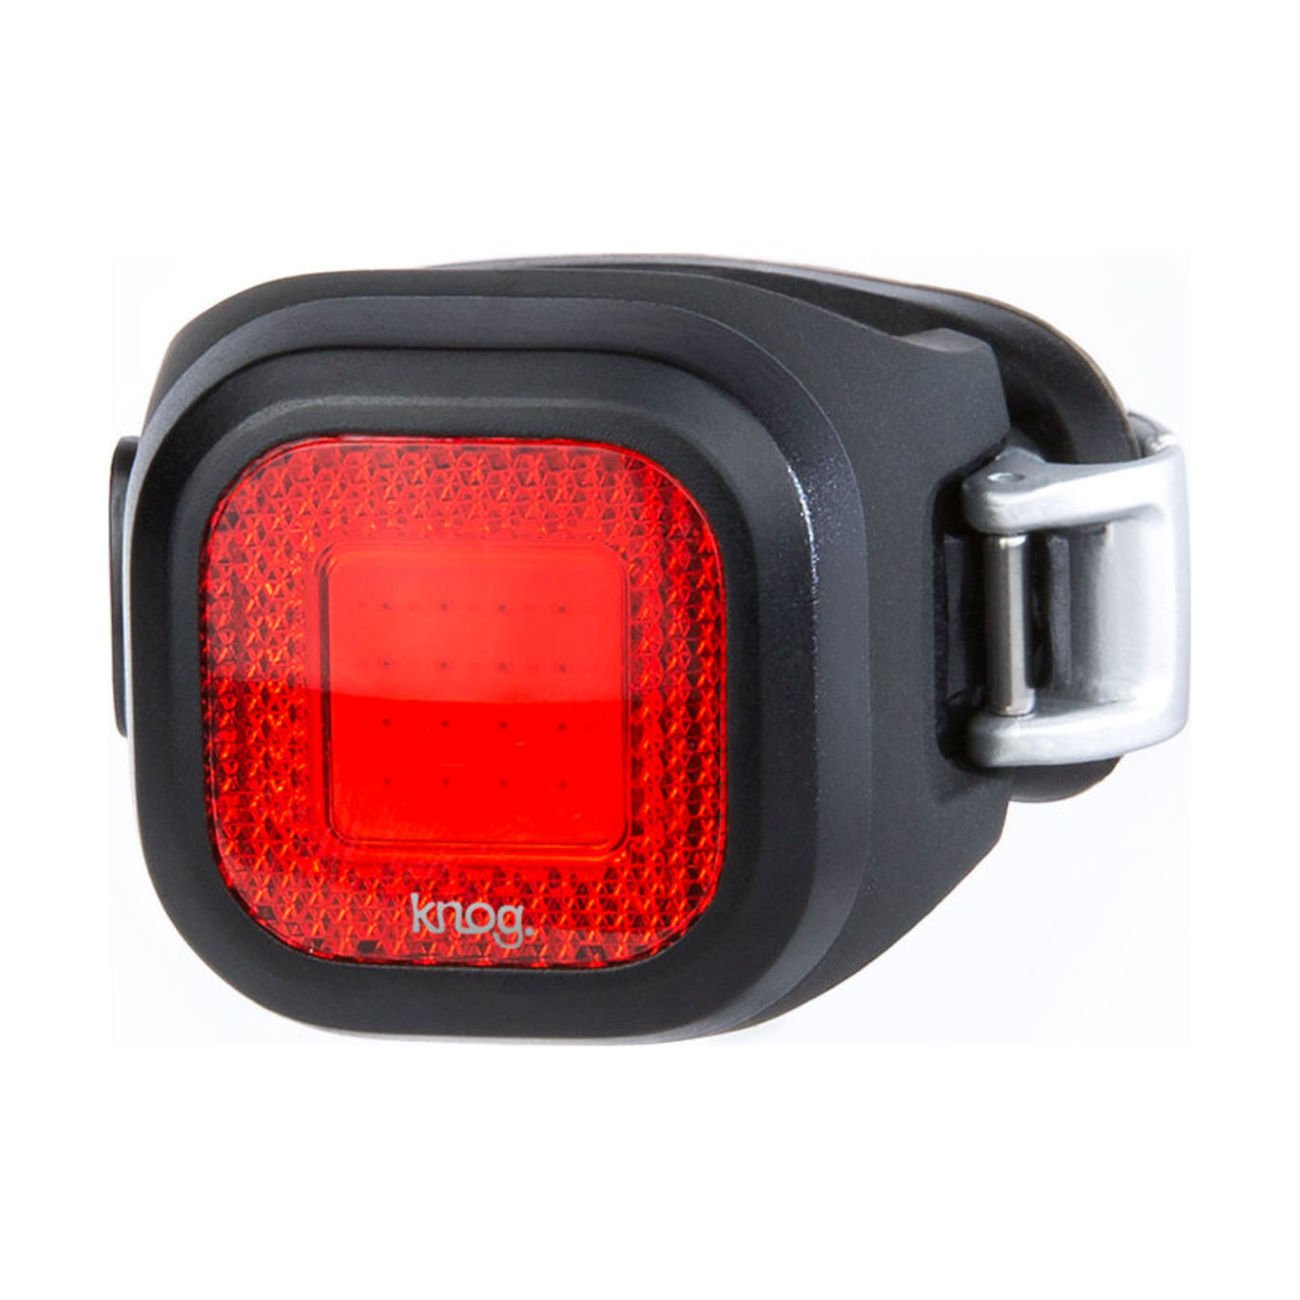 KNOG Blinder Mini Chippy Rear Taillight Black 11961